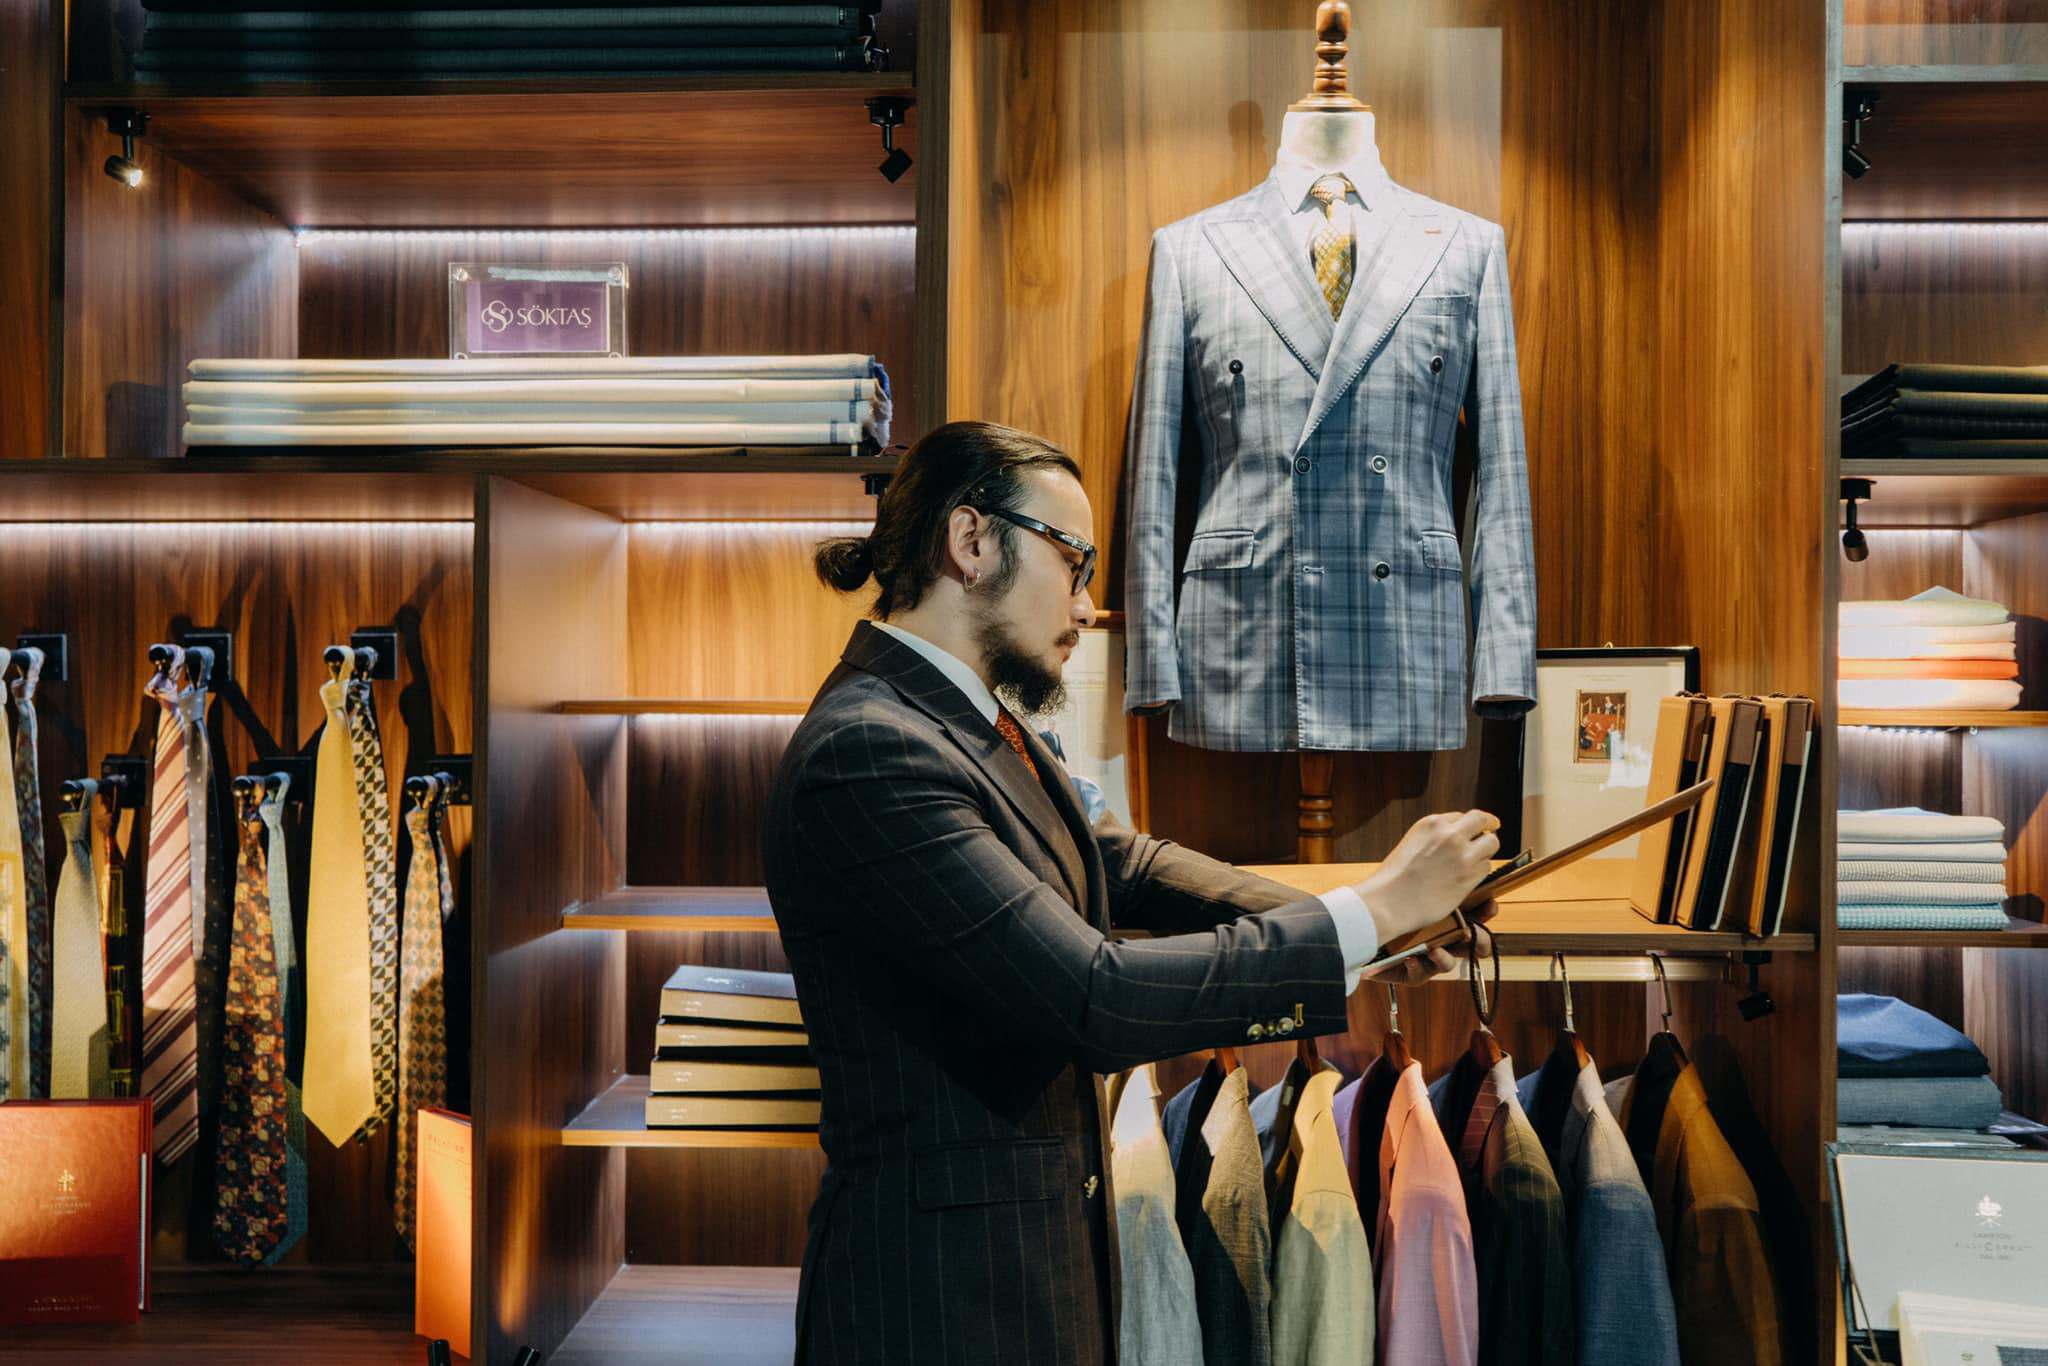 Hanging Passion Next To Suits With Gent-Style In Vietnam